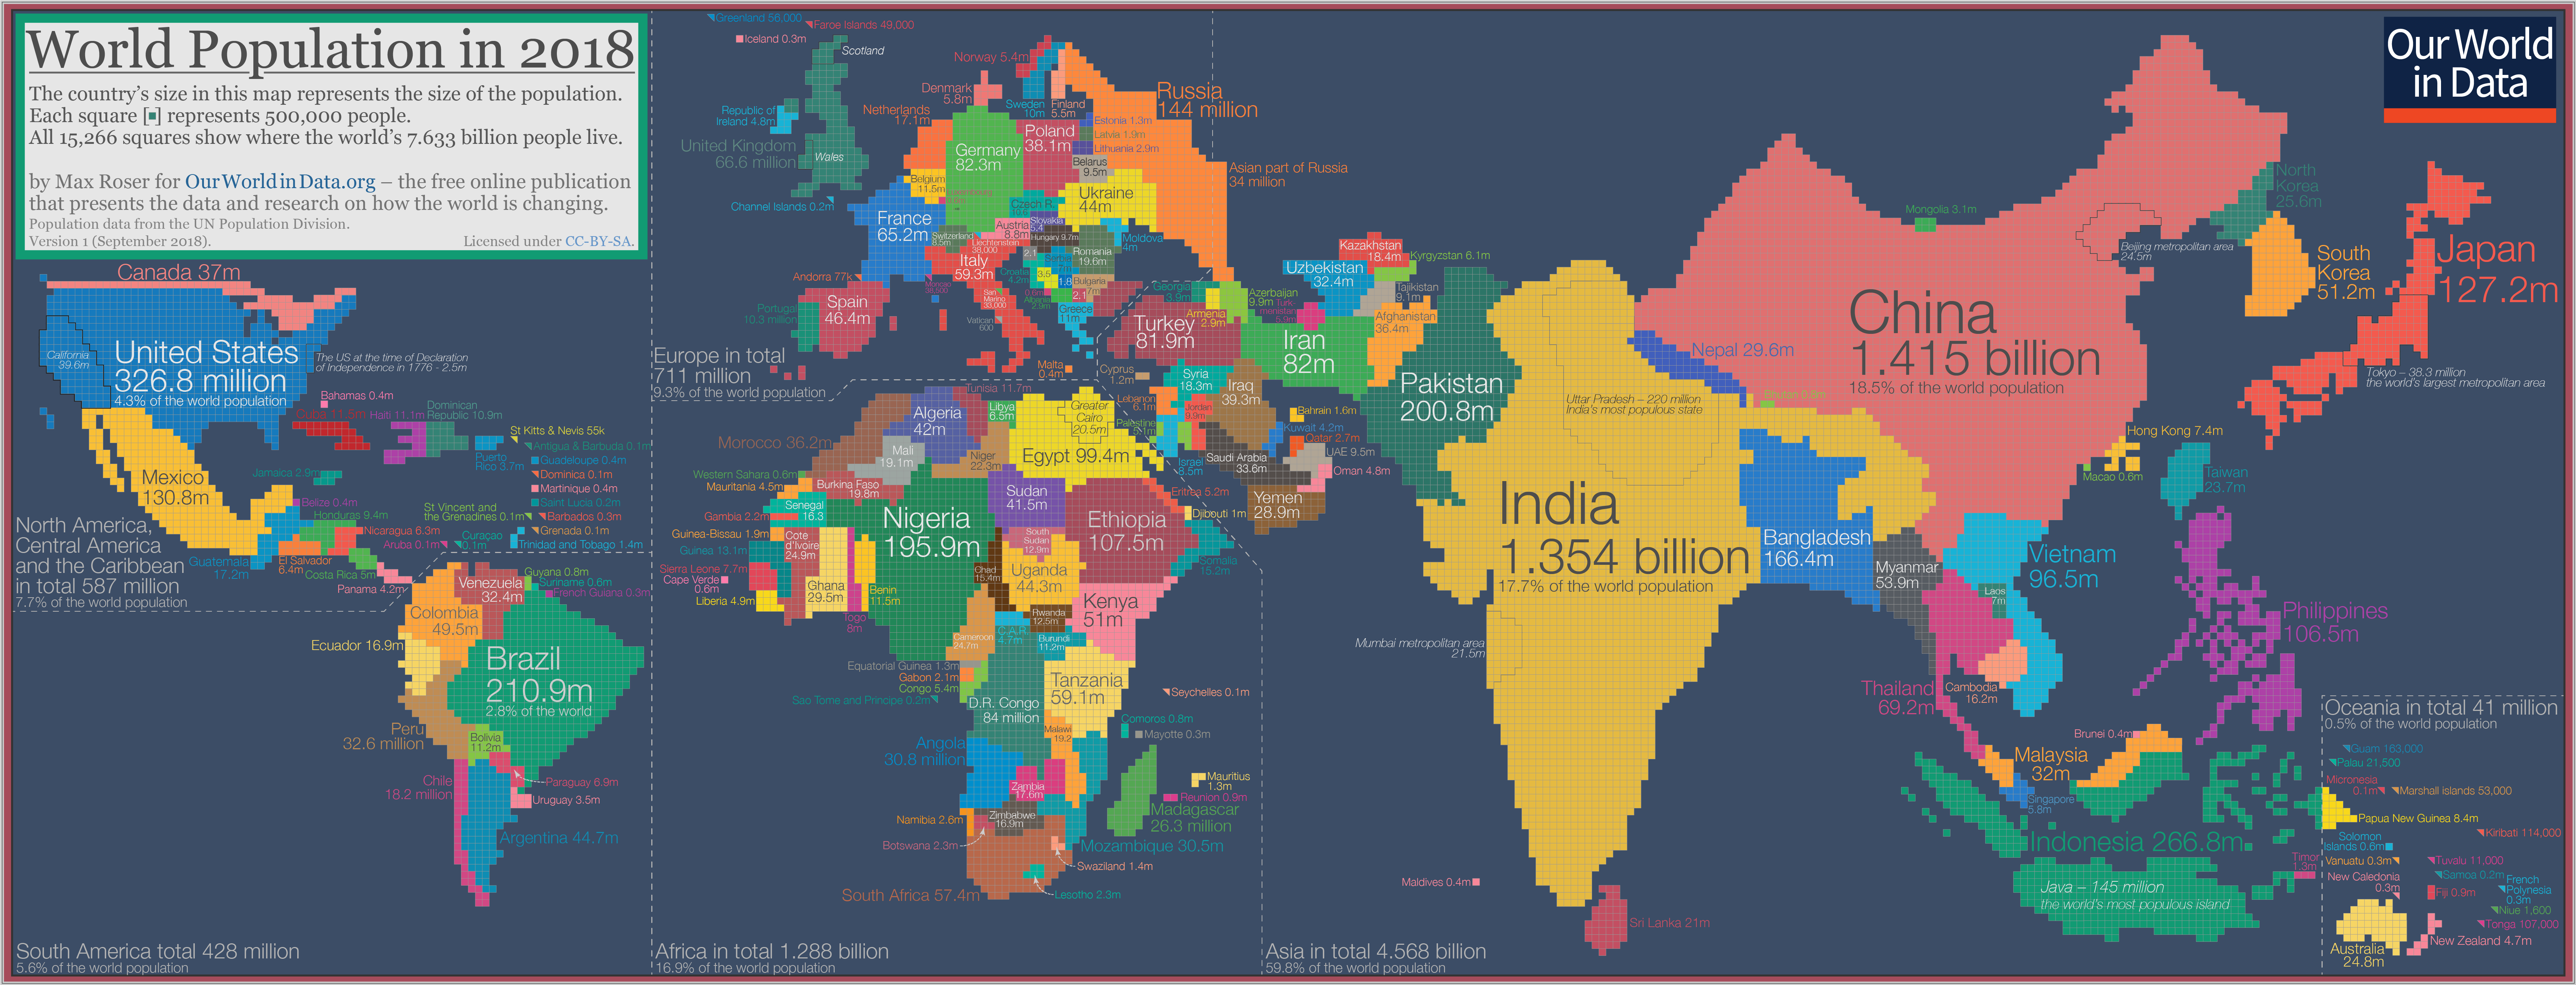 Population Map Of The World The map we need if we want to think about how global living